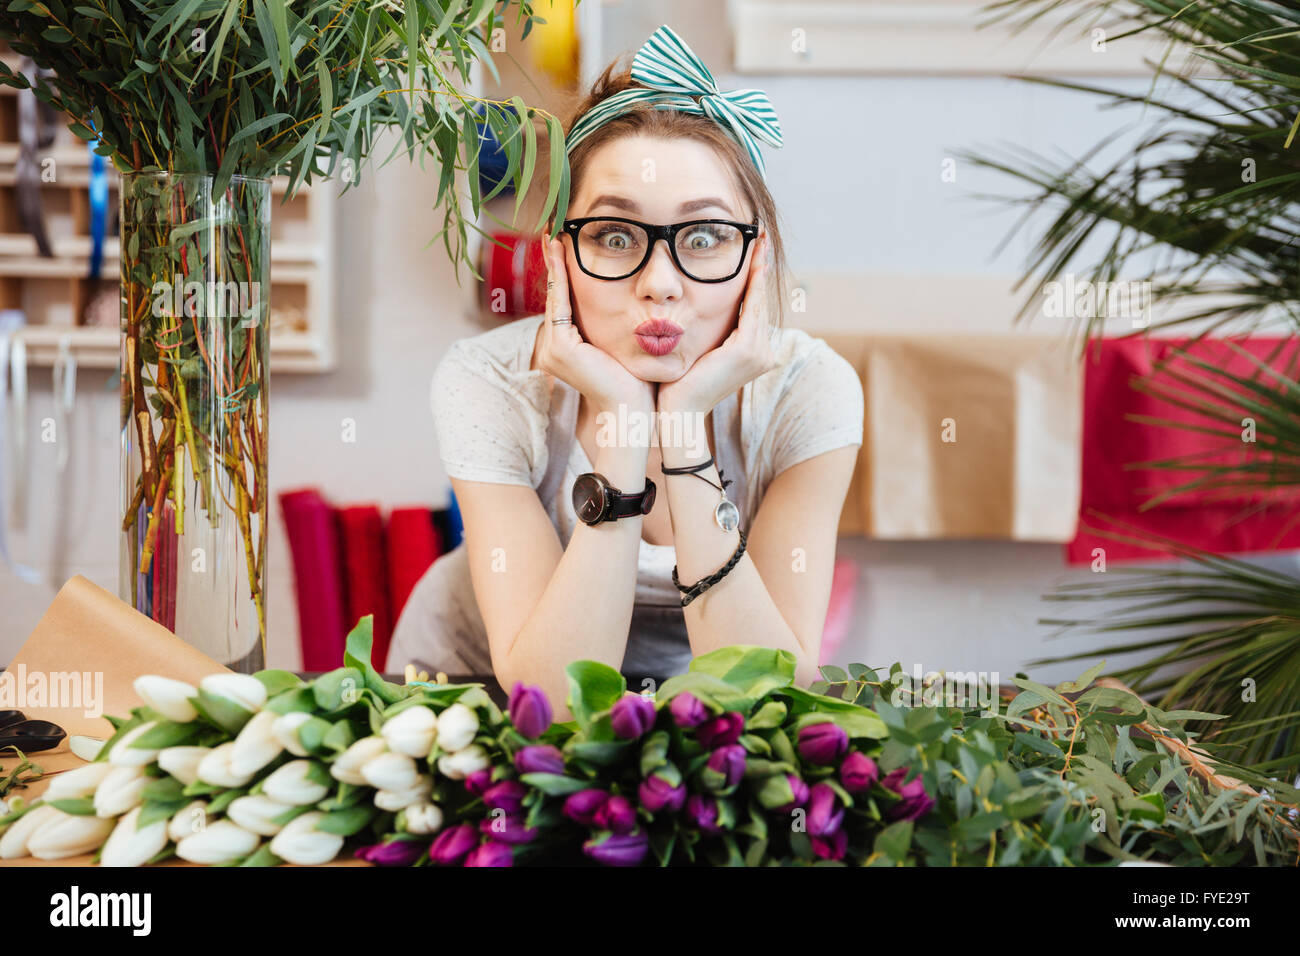 Portrait of charming amusing young woman florist making funny face standing in flower shop - Stock Image